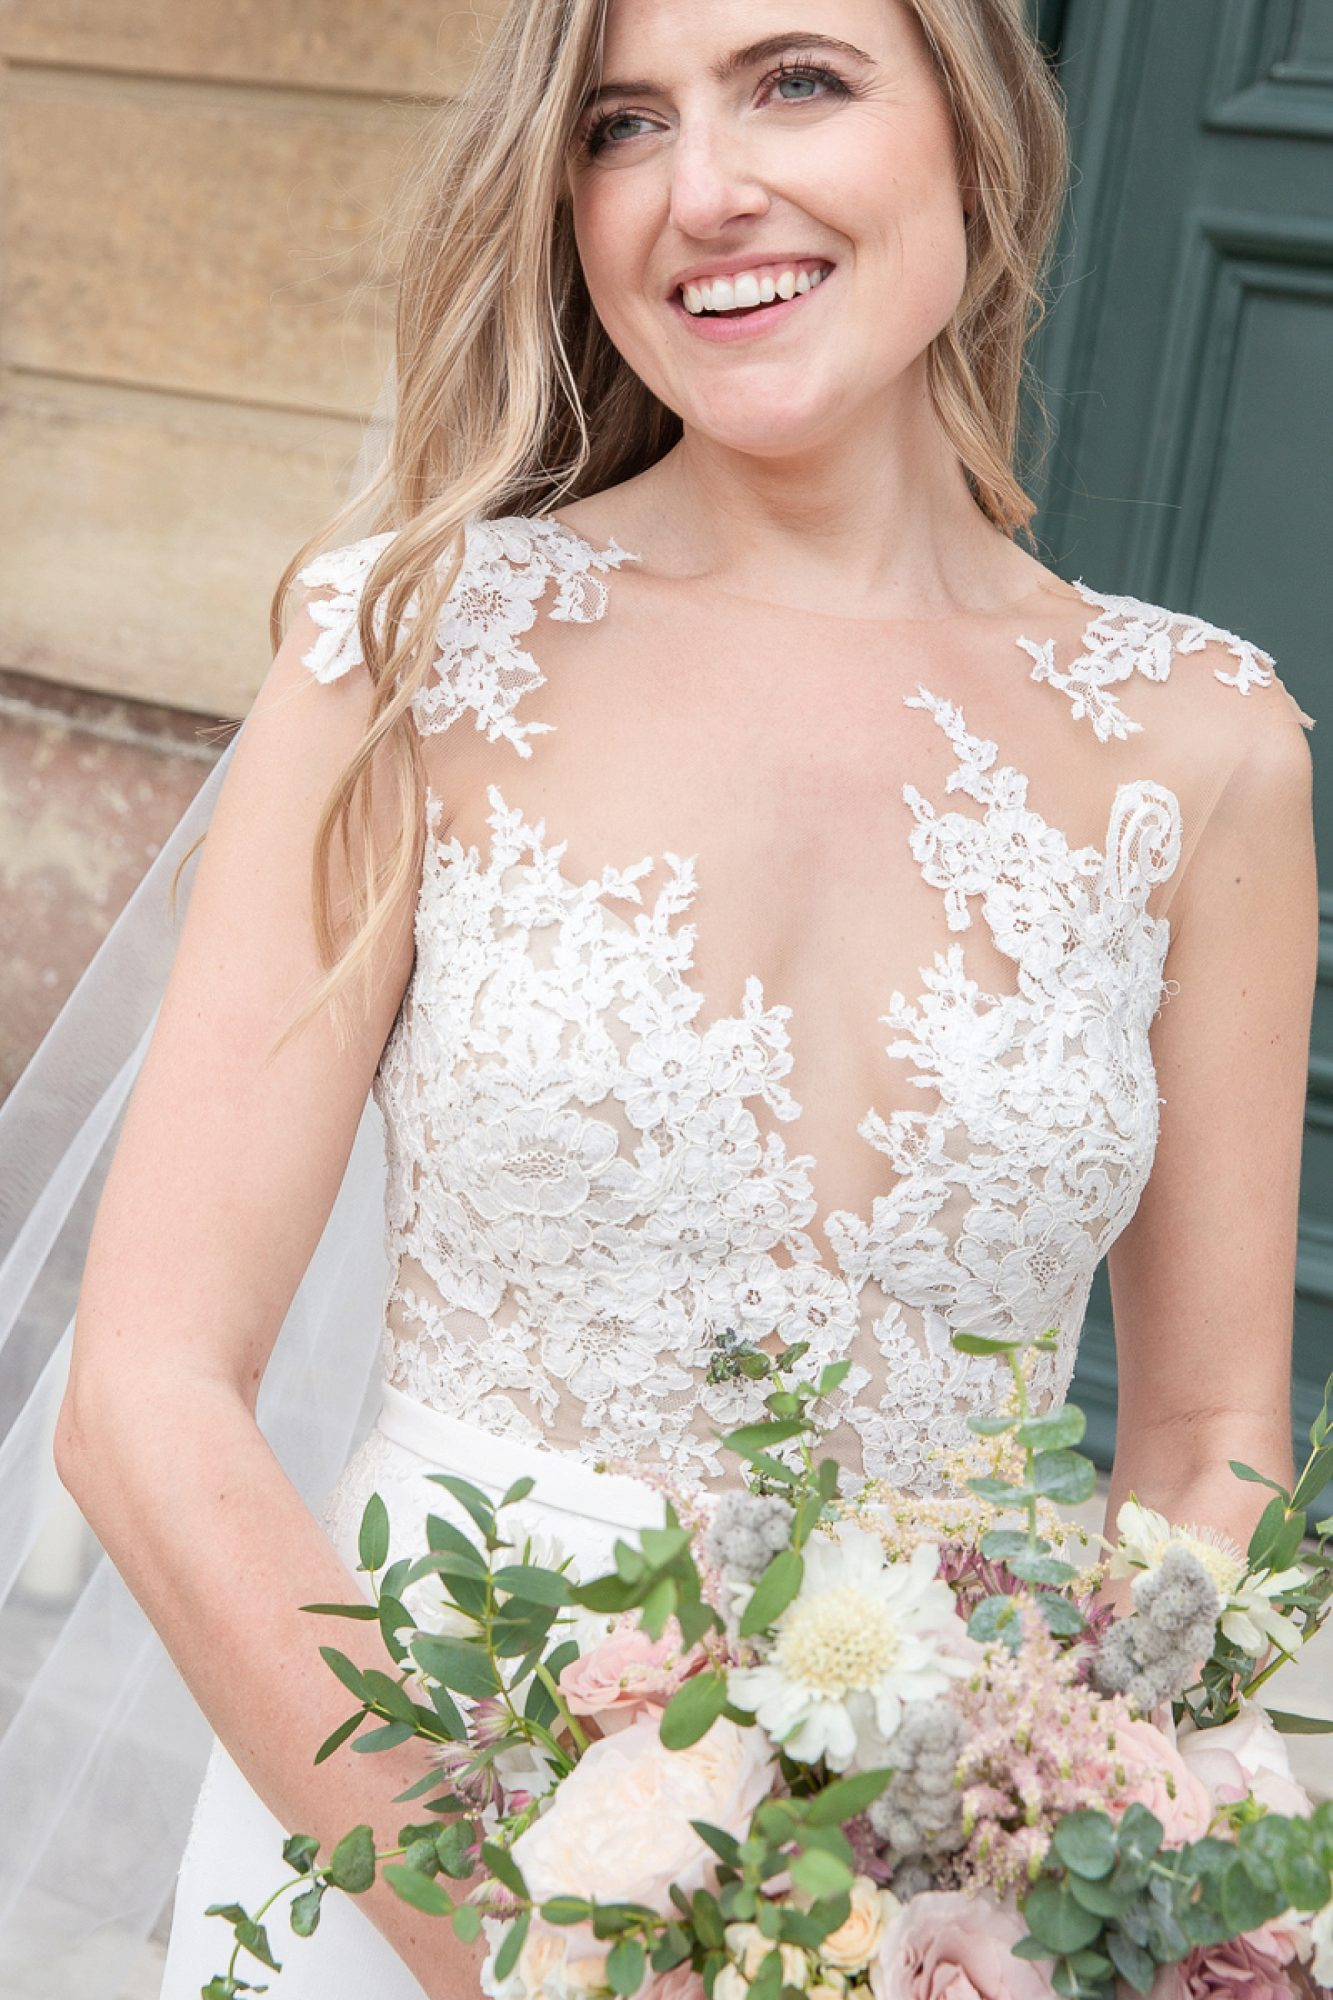 bride wearing pronovias lace dress laughs with her bouquet at Pynes house